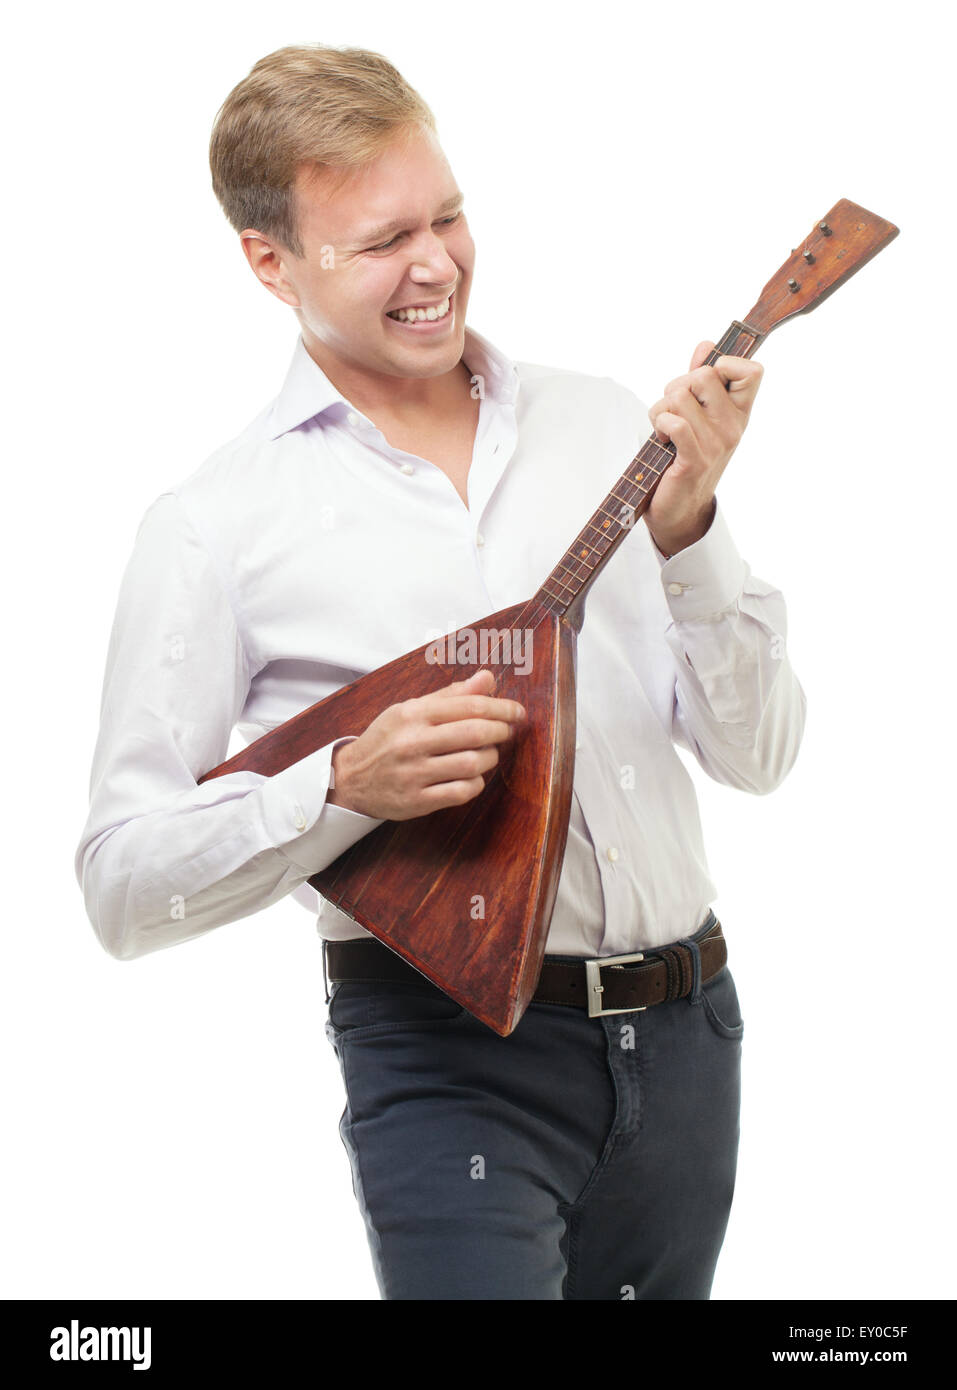 Excited young man playing balalaika, isolated on white - Stock Image